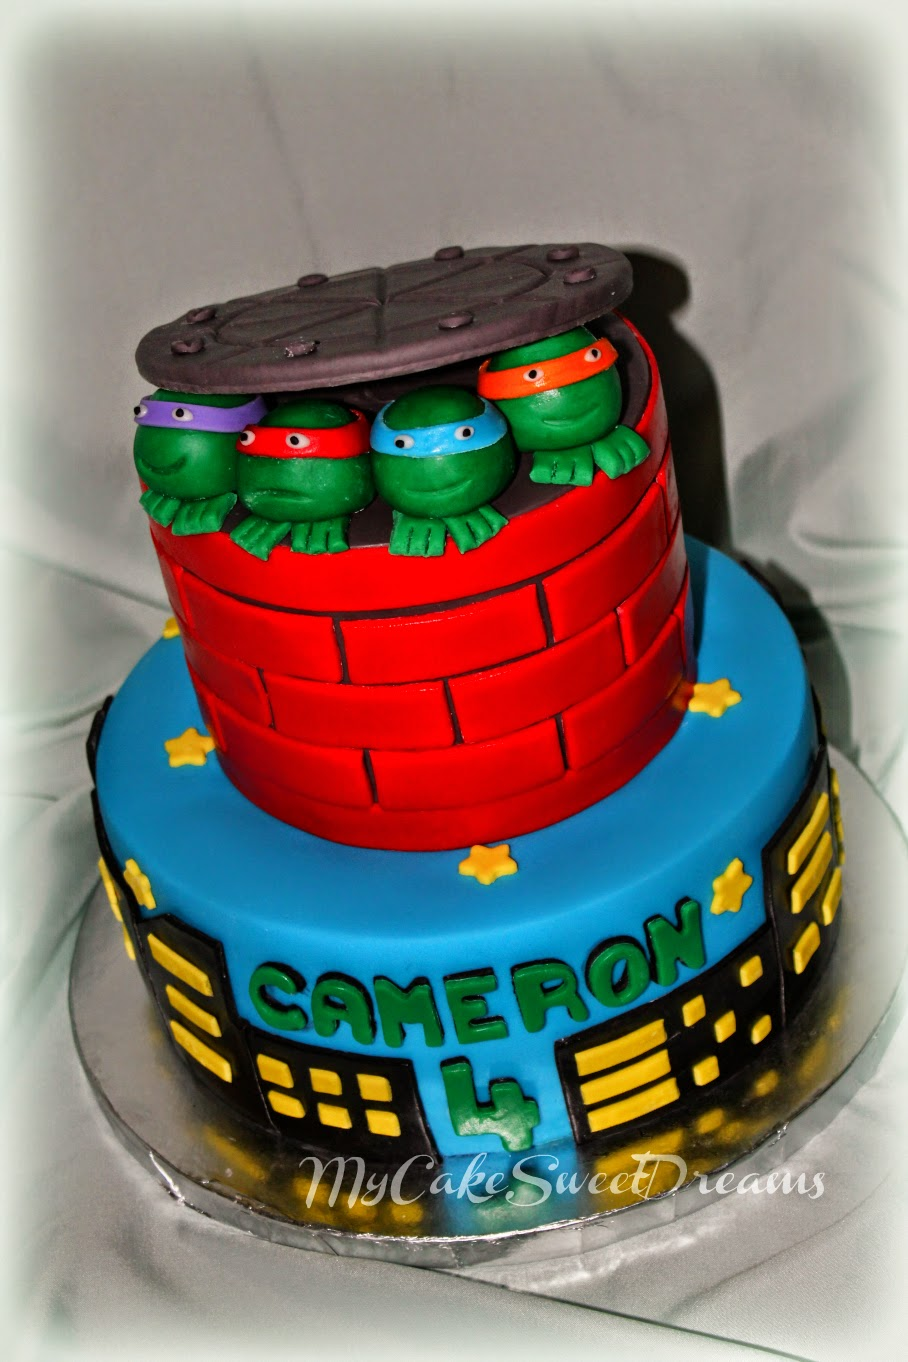 My Cake Sweet Dreams Ninja Turtles Birthday Cake